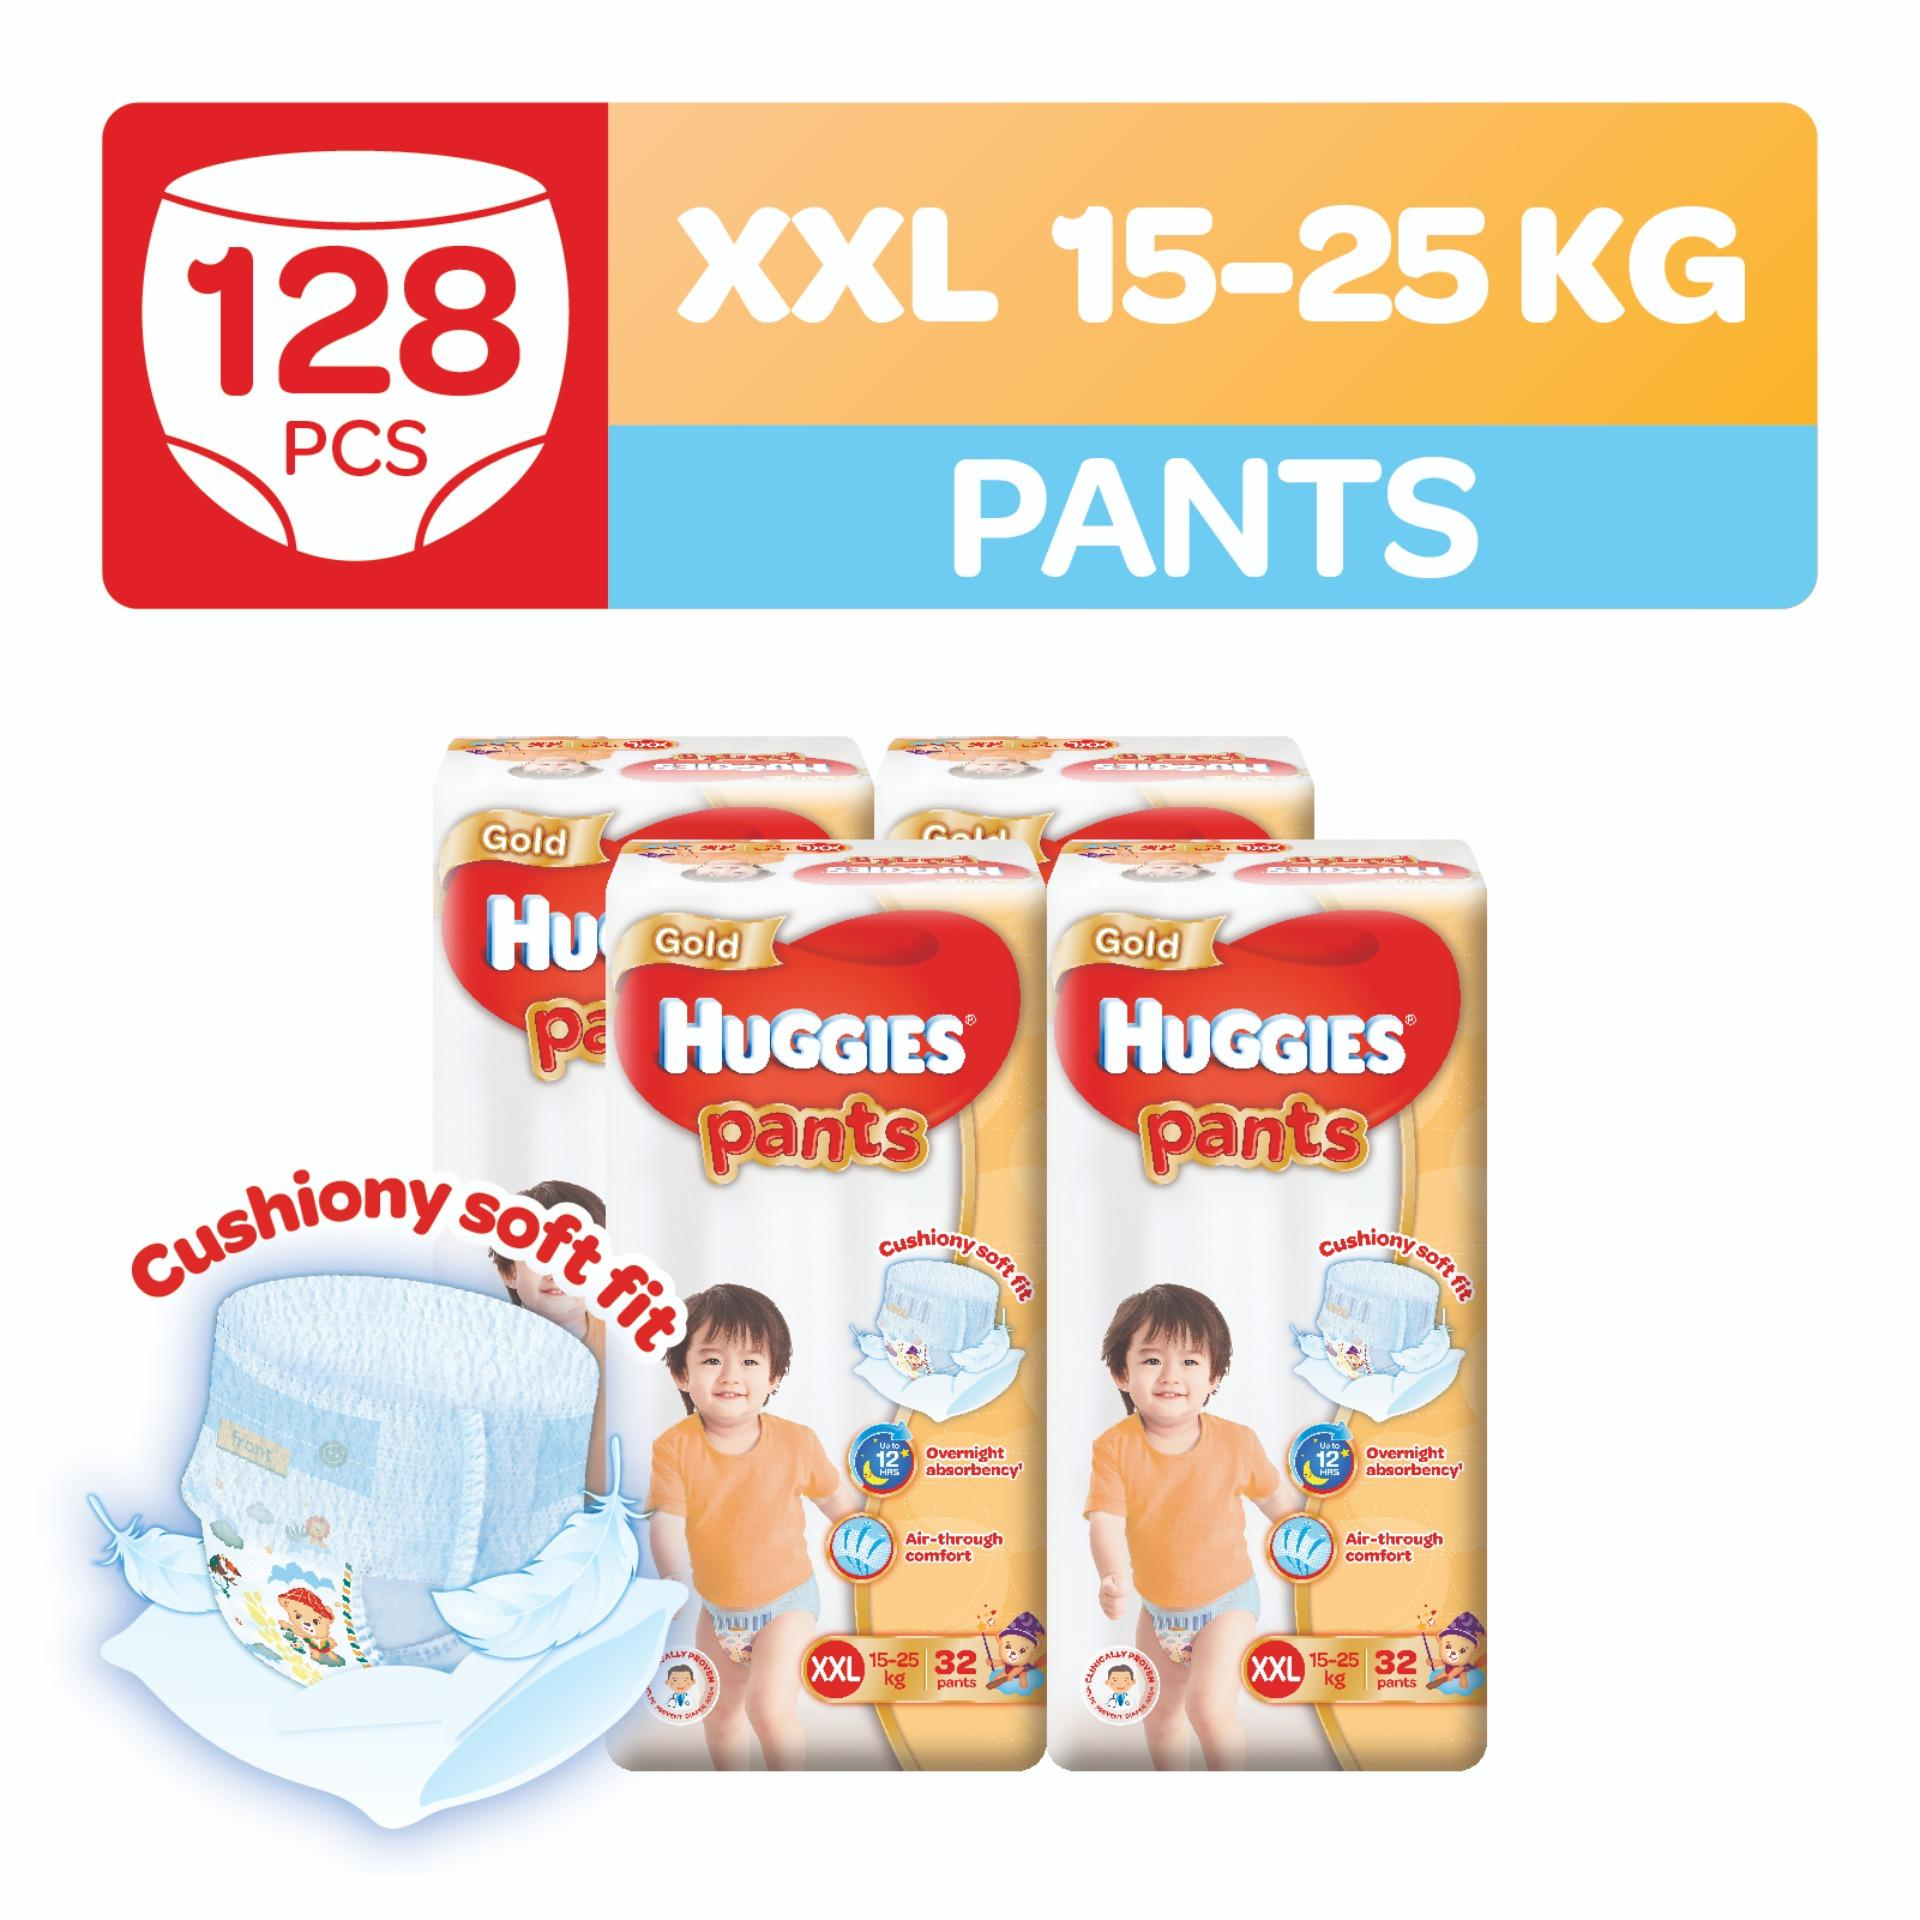 Store Huggies Gold Pullup Pants Xxl 32Pcs X 4 Packs Huggies On Singapore